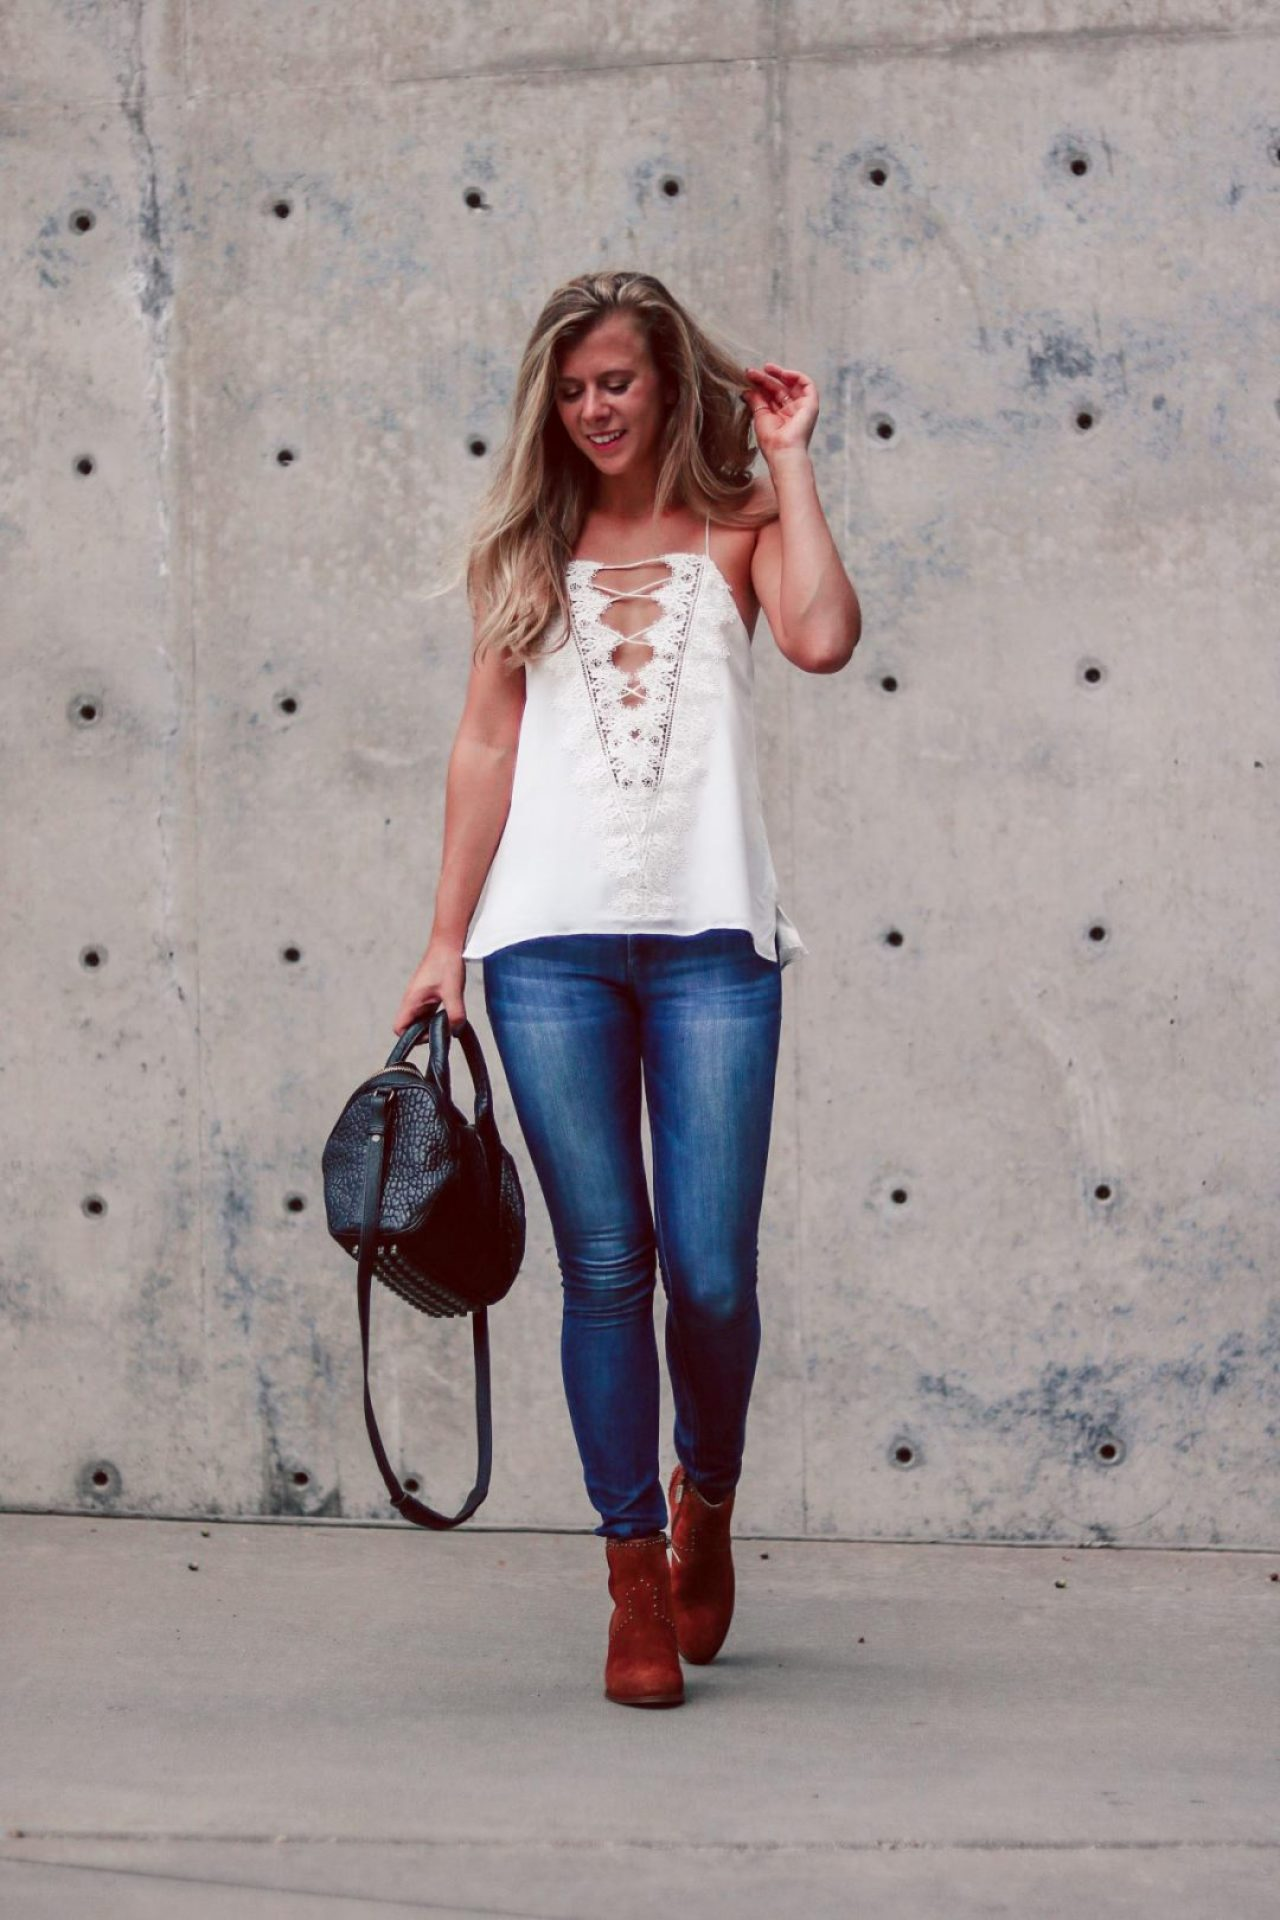 Lace-Up Cami Comparison | Running in Heels | Blonde wearing lace-up cami by Cami NYC in white, DL1961 denim, and Italeau booties while carrying an ALexander Wang Rockie bag.